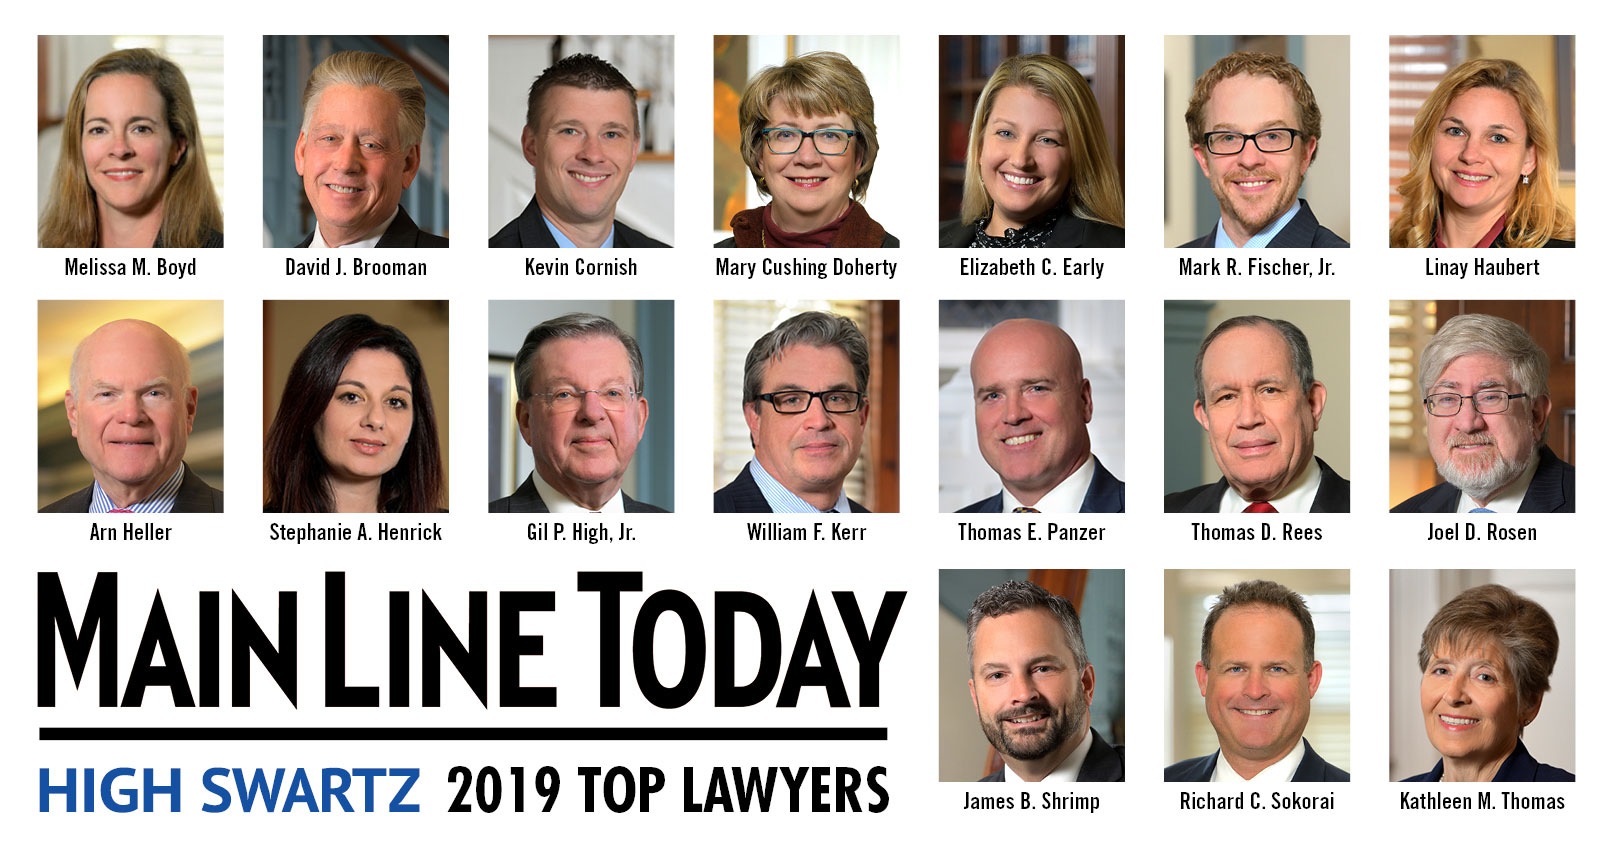 17 High Swartz Attorneys Named Top Lawyers